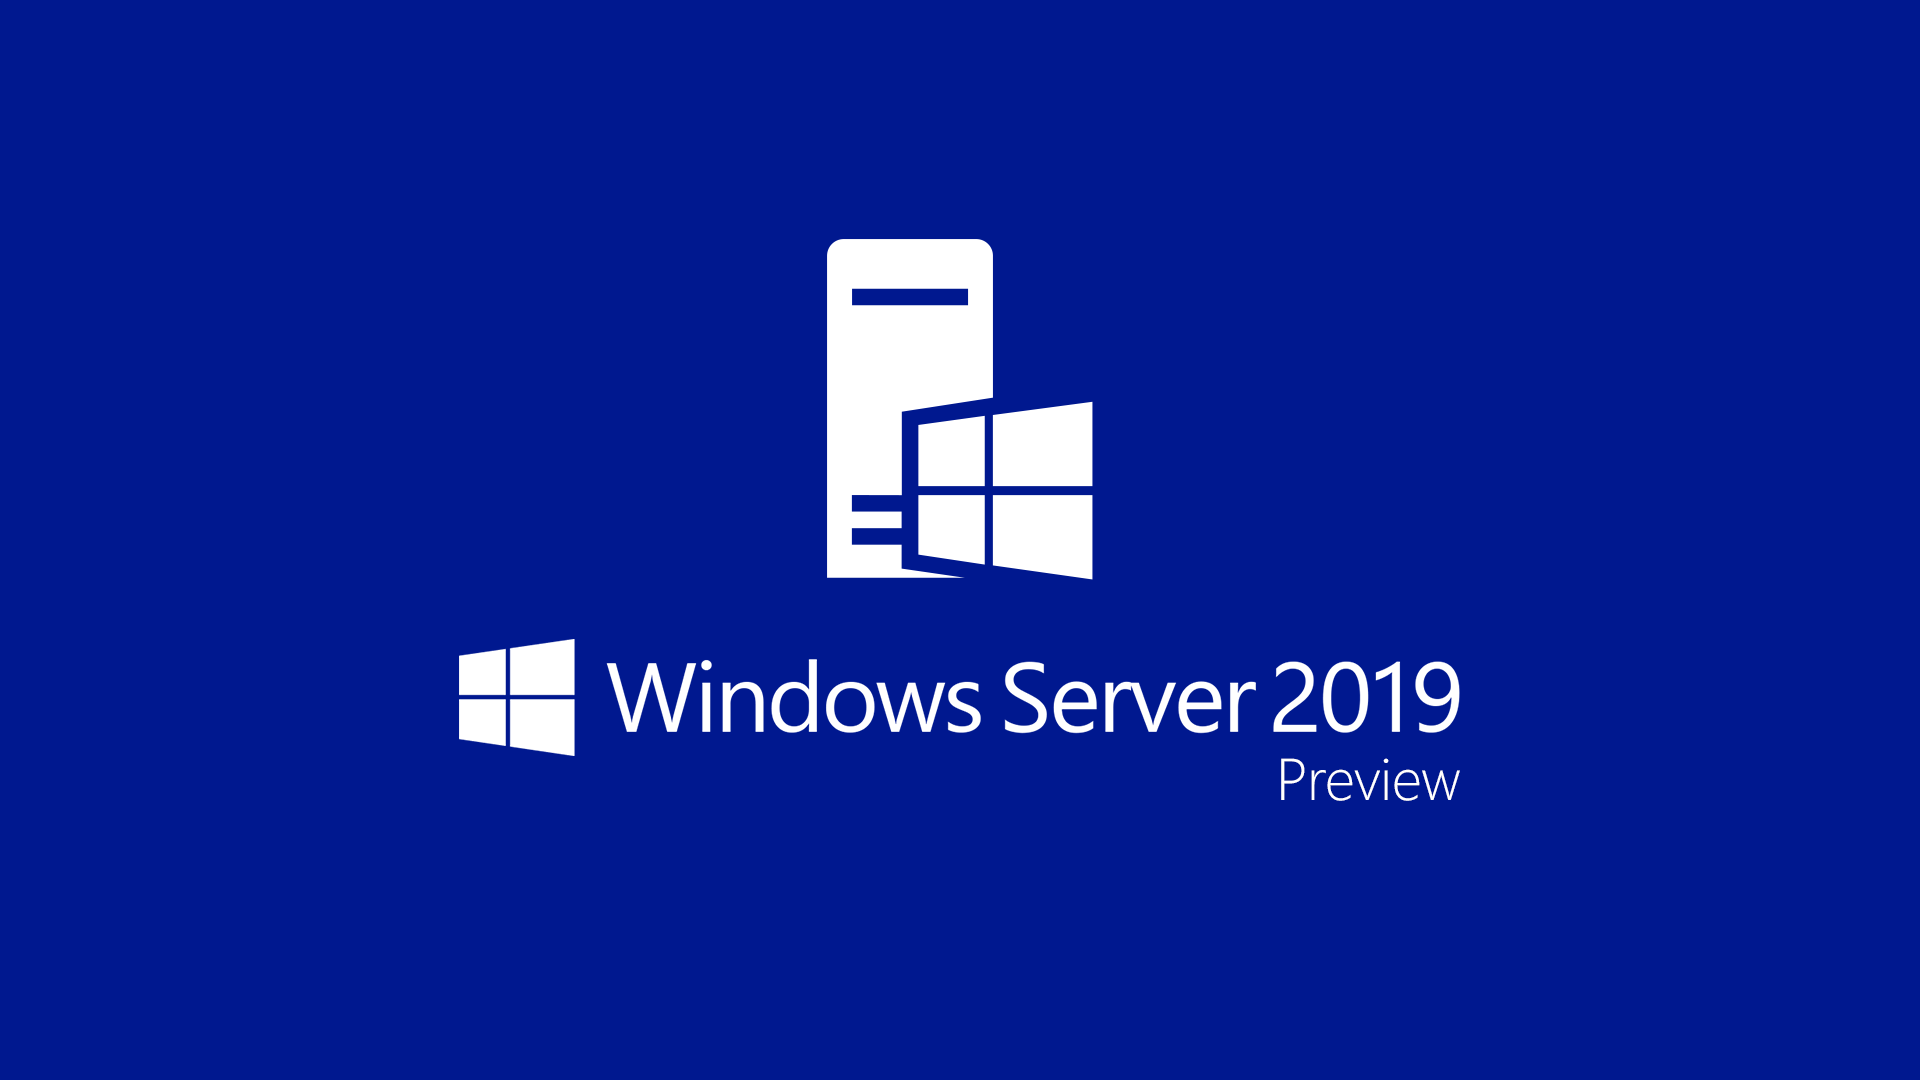 Windows Server 2019 what's new?